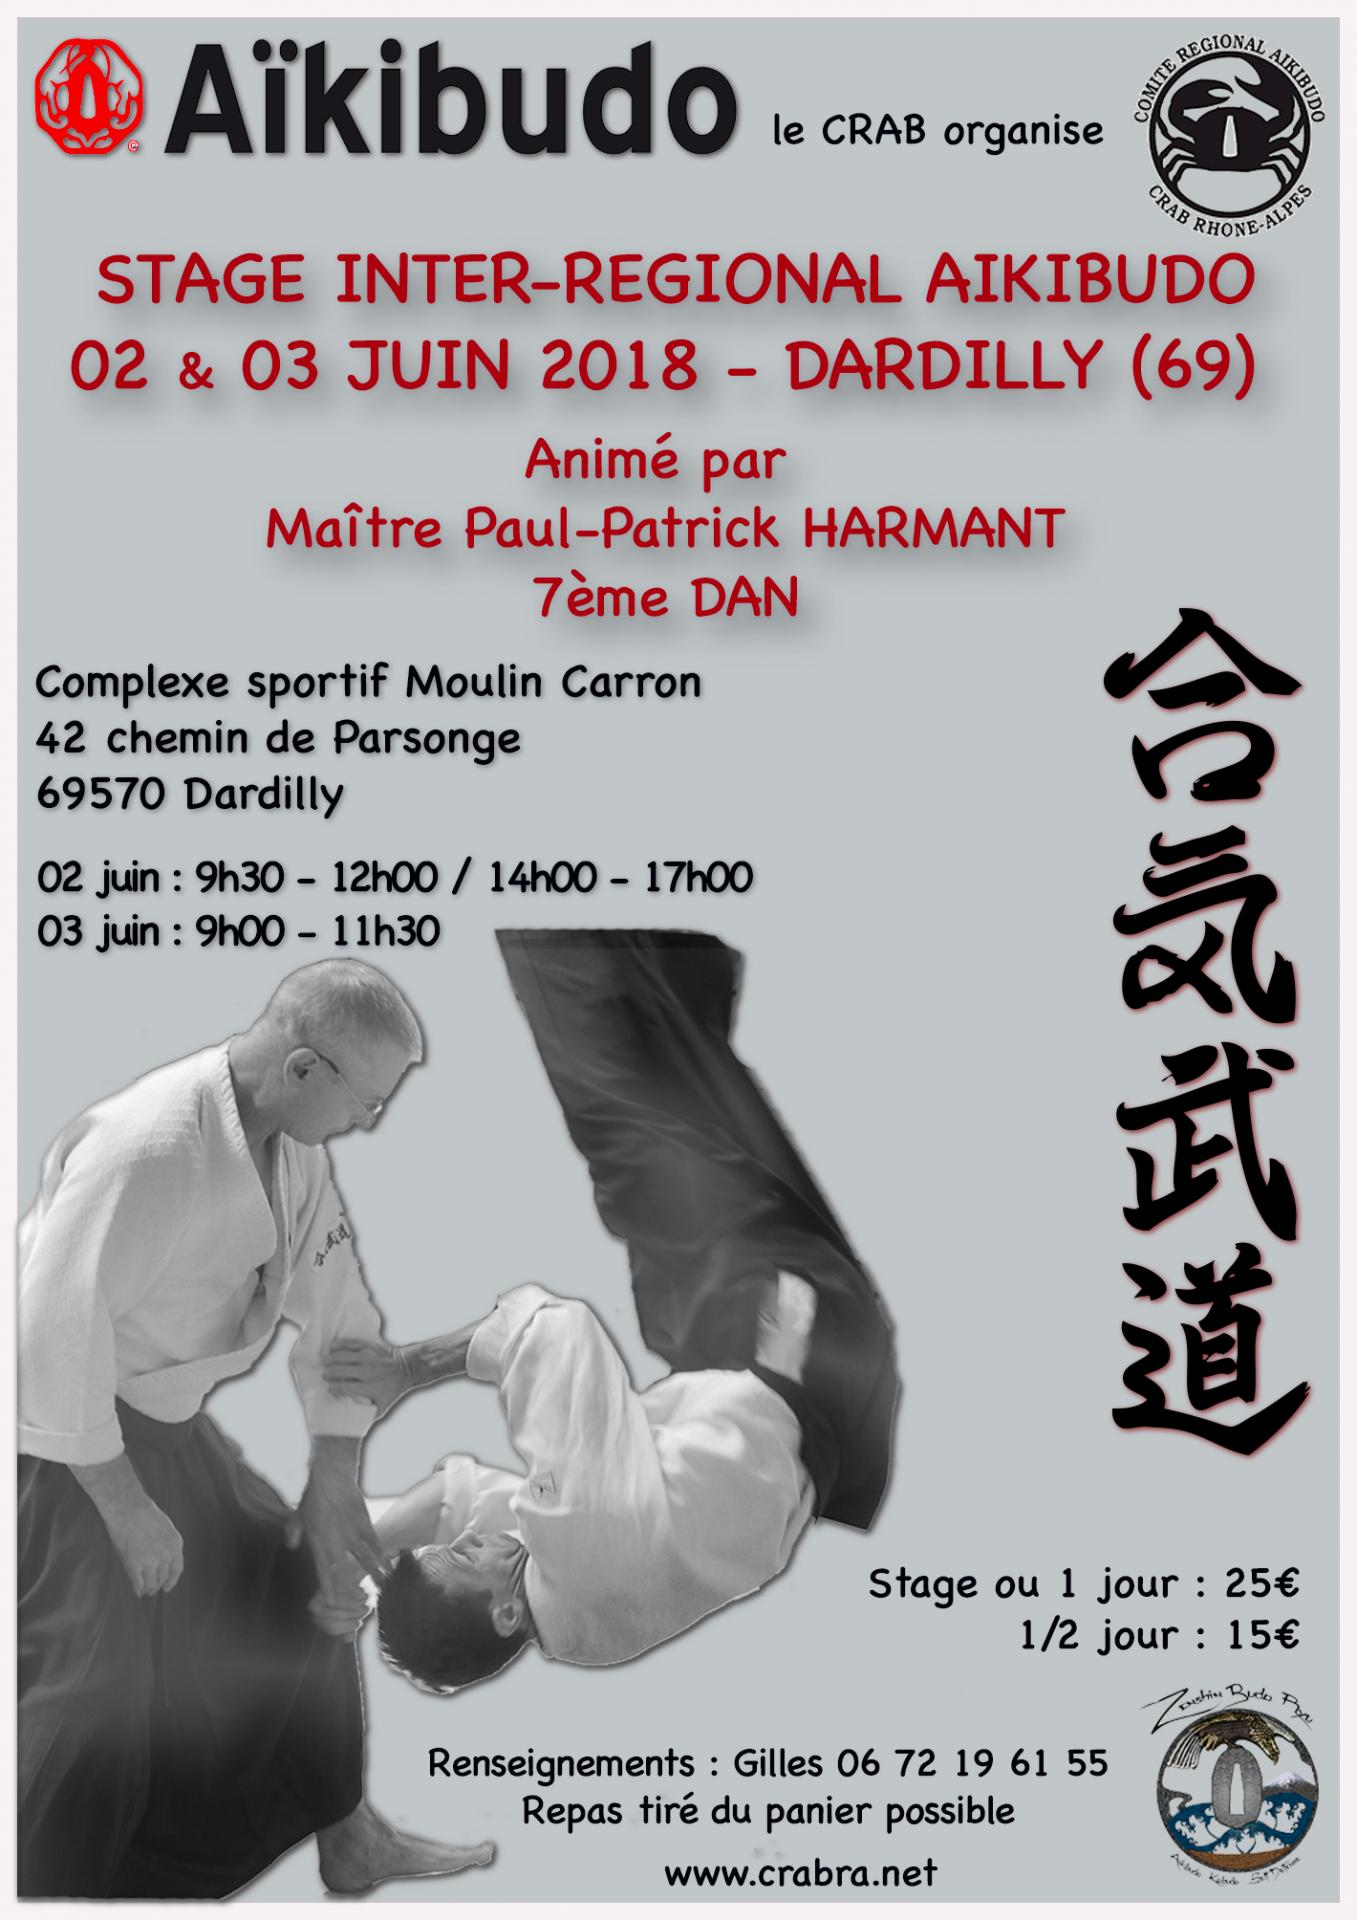 Stageaikibudodardilly 2018 06 0203